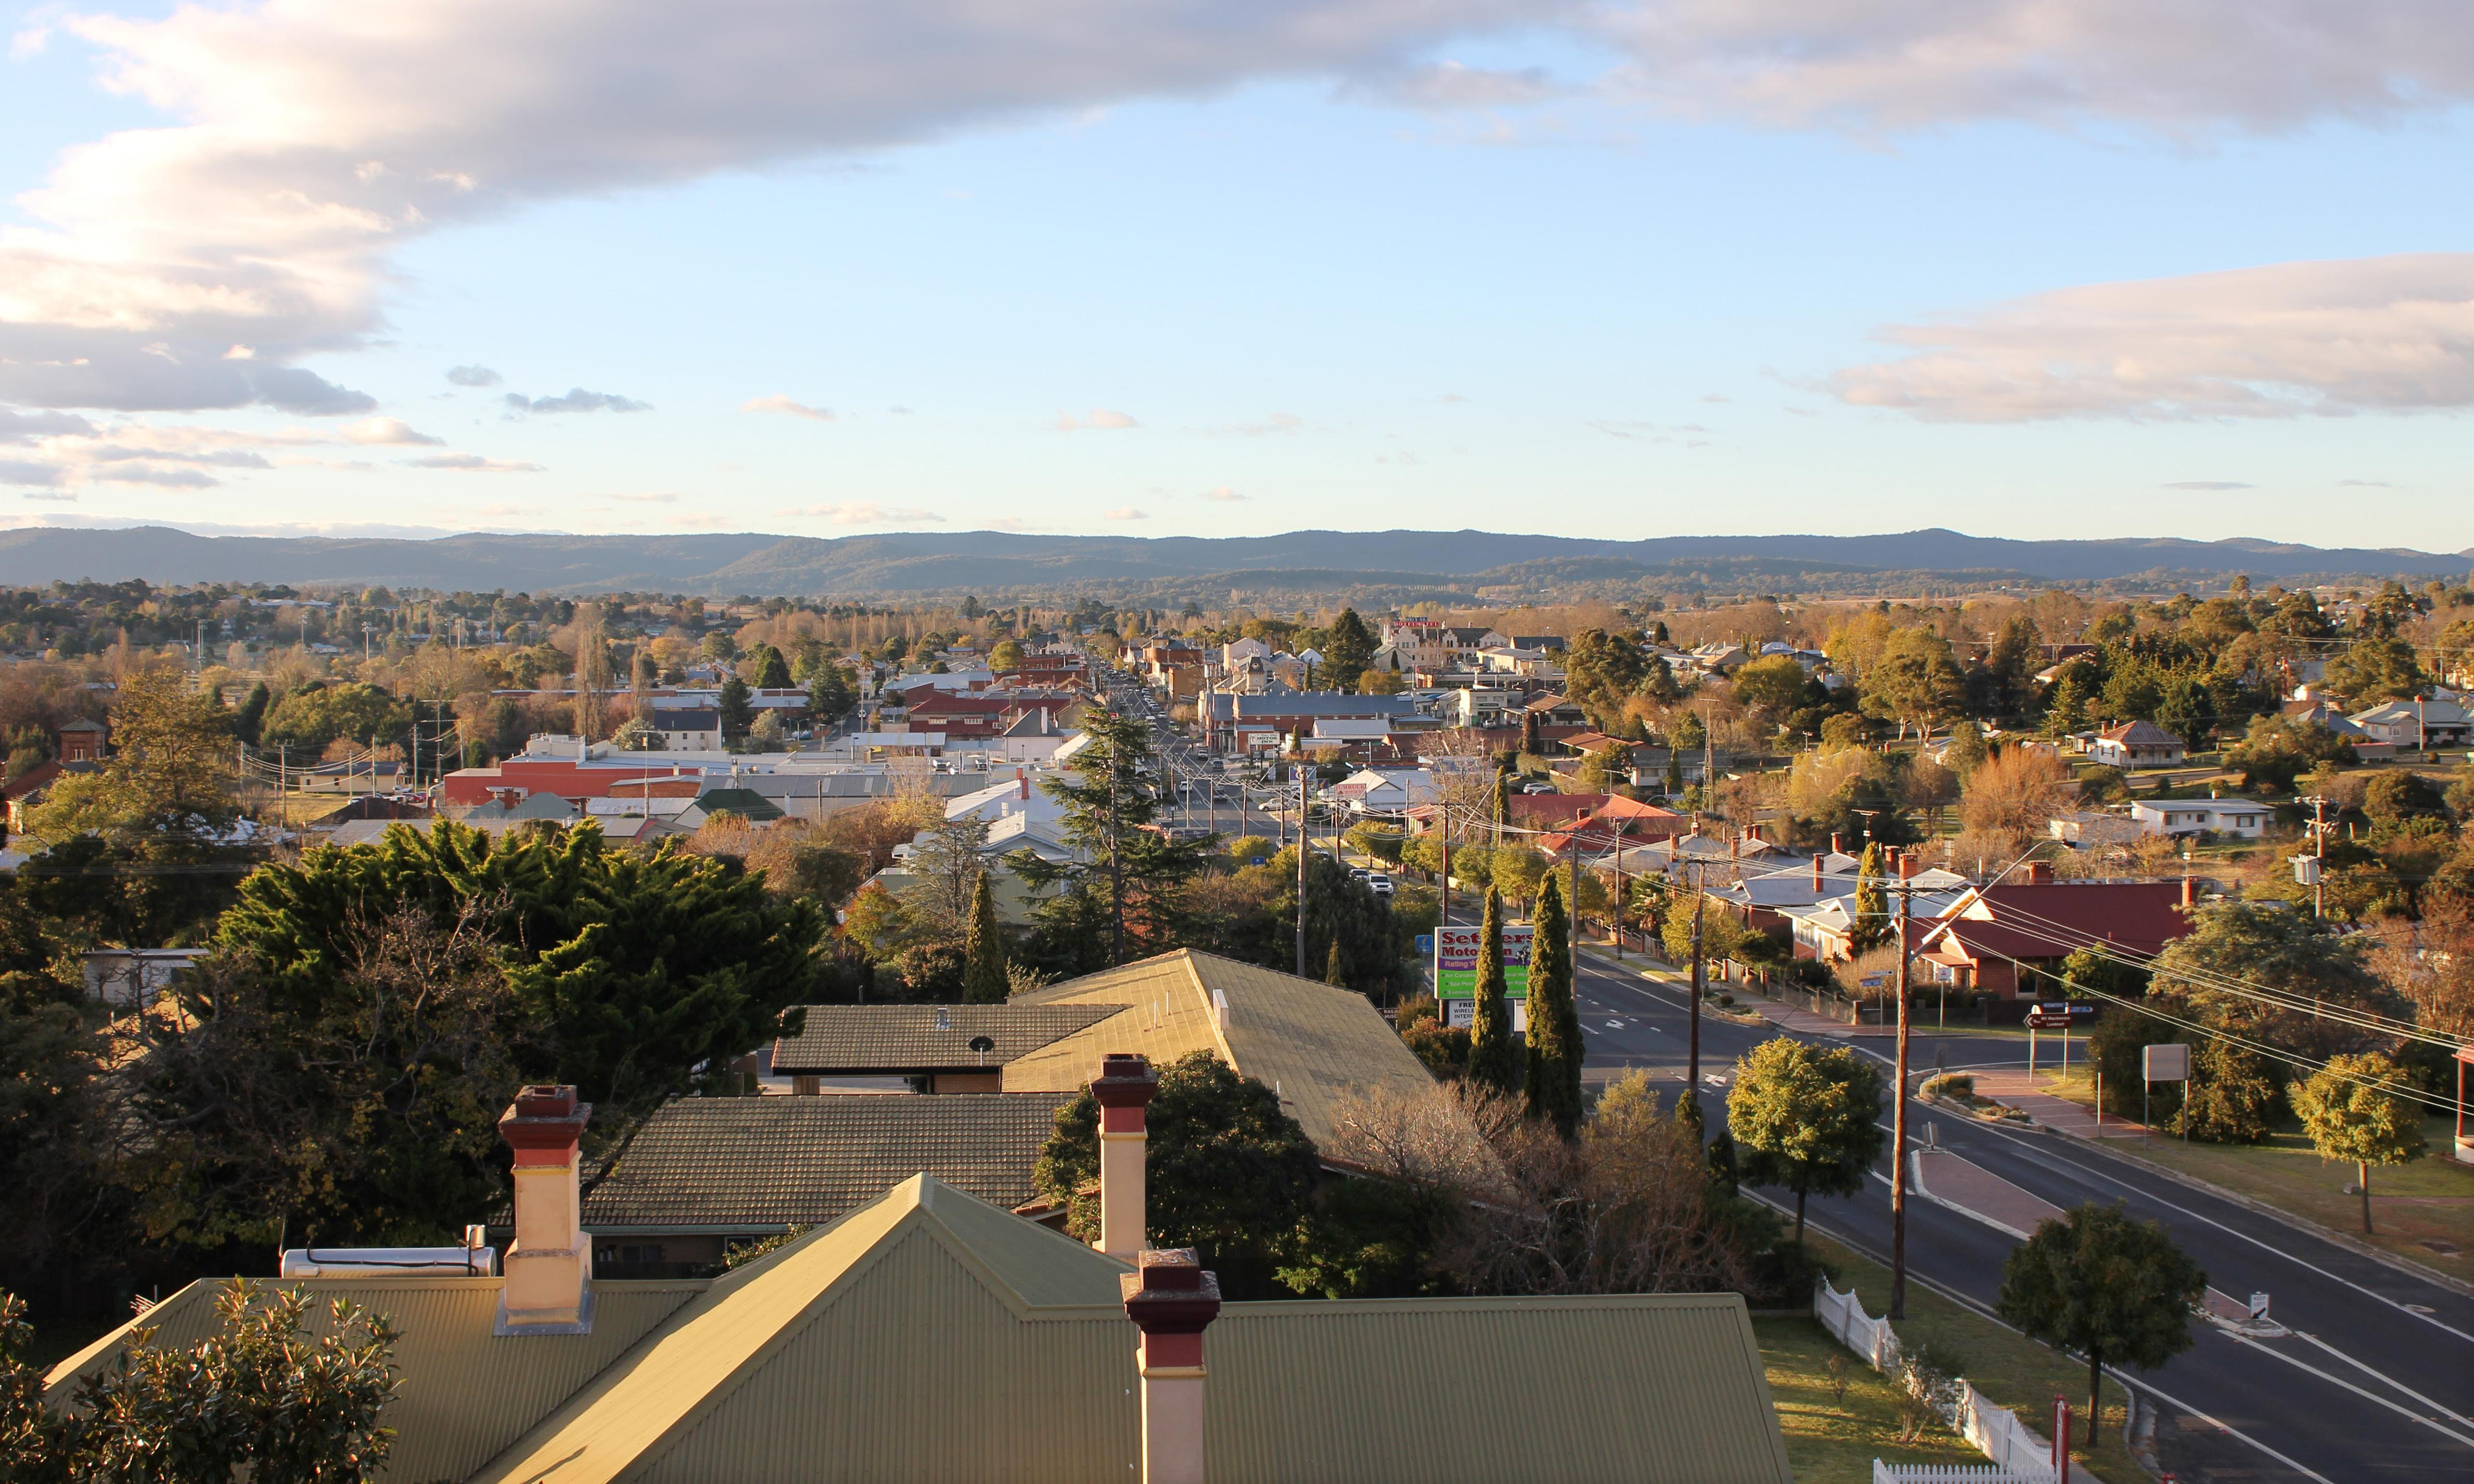 Bushfires and drought leave NSW town of Tenterfield without clean water for 72 days